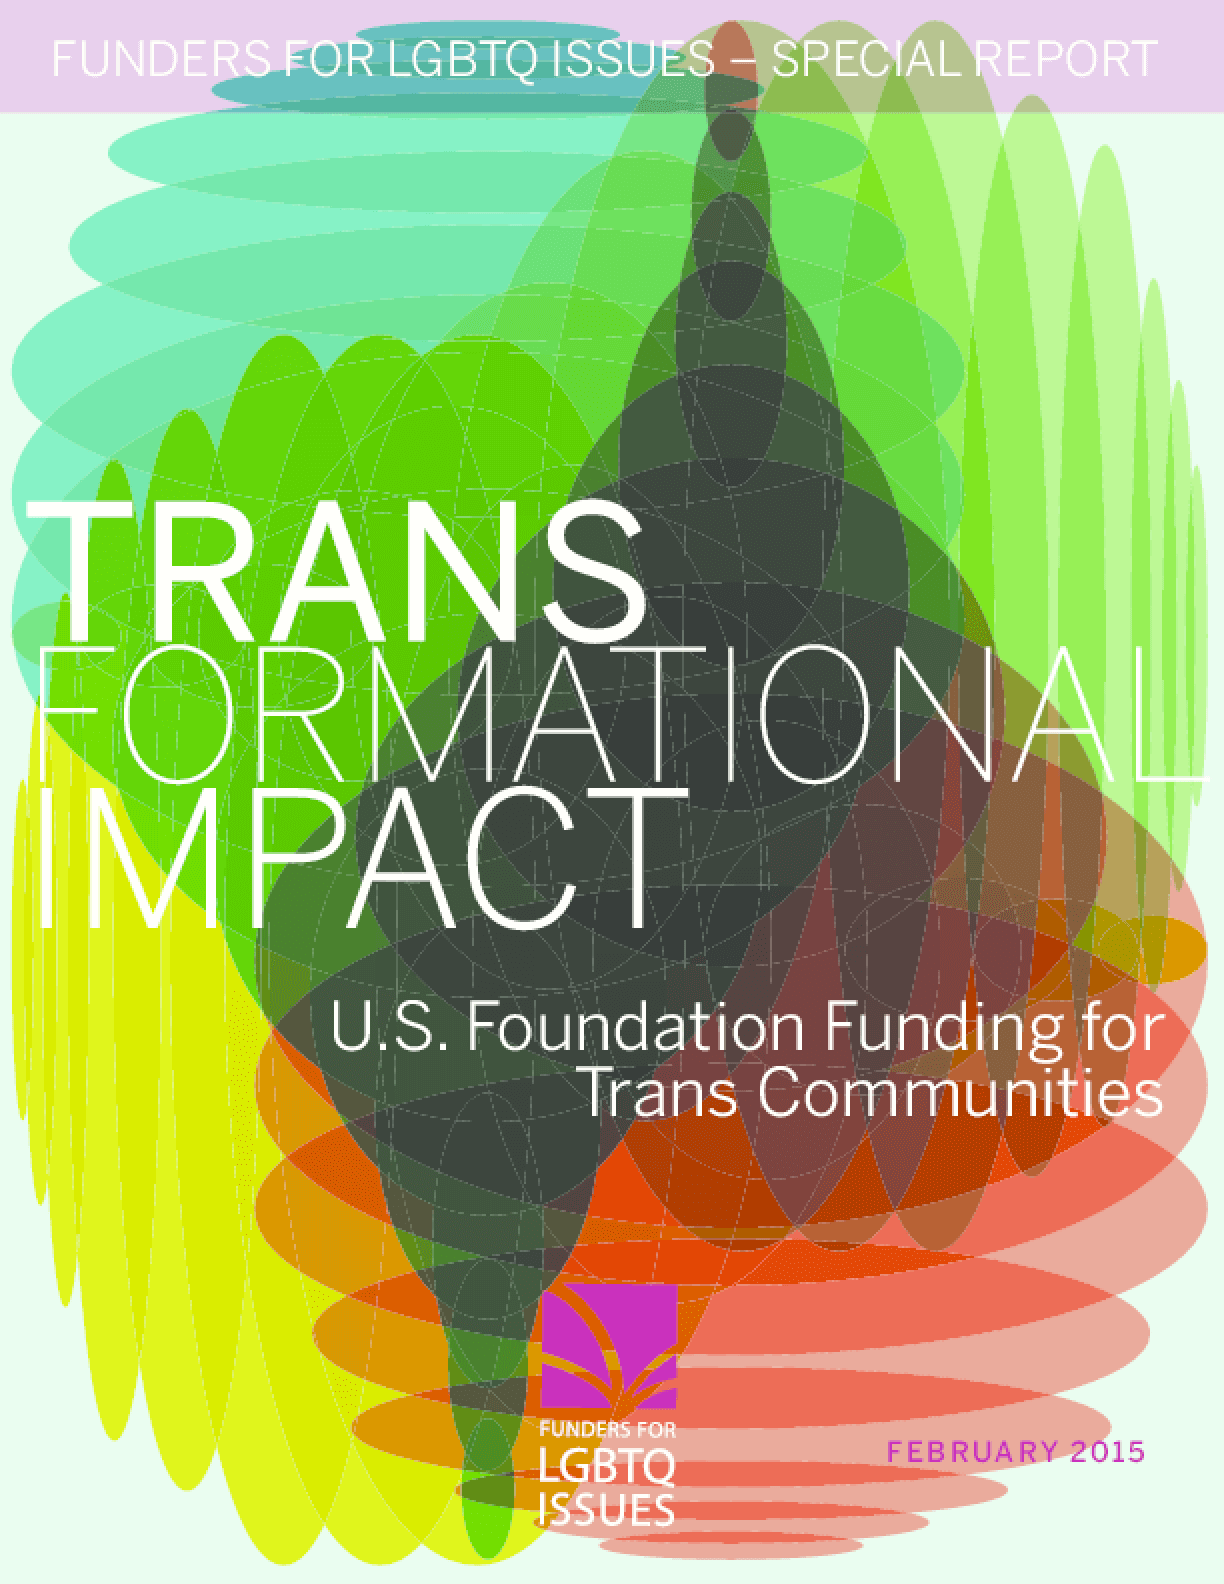 Transformational Impact: U.S. Foundation Funding for Trans Communities